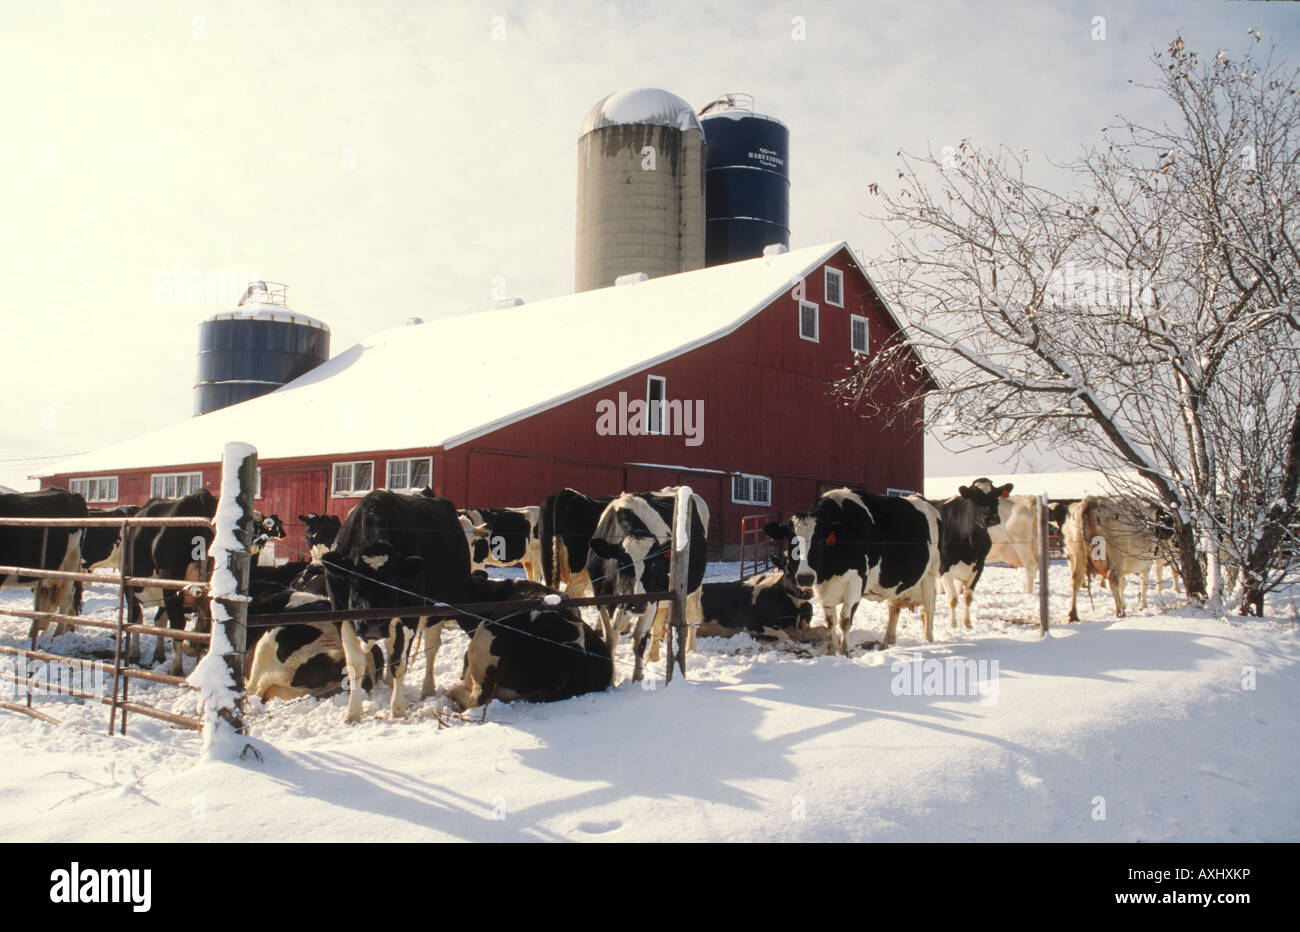 Cow on green pasture with red barn with grain silo royalty free stock - Wisconsin Kenosha County Dairy Cows Standing By Fence Red Barn And Silo Snow On Ground Sunny